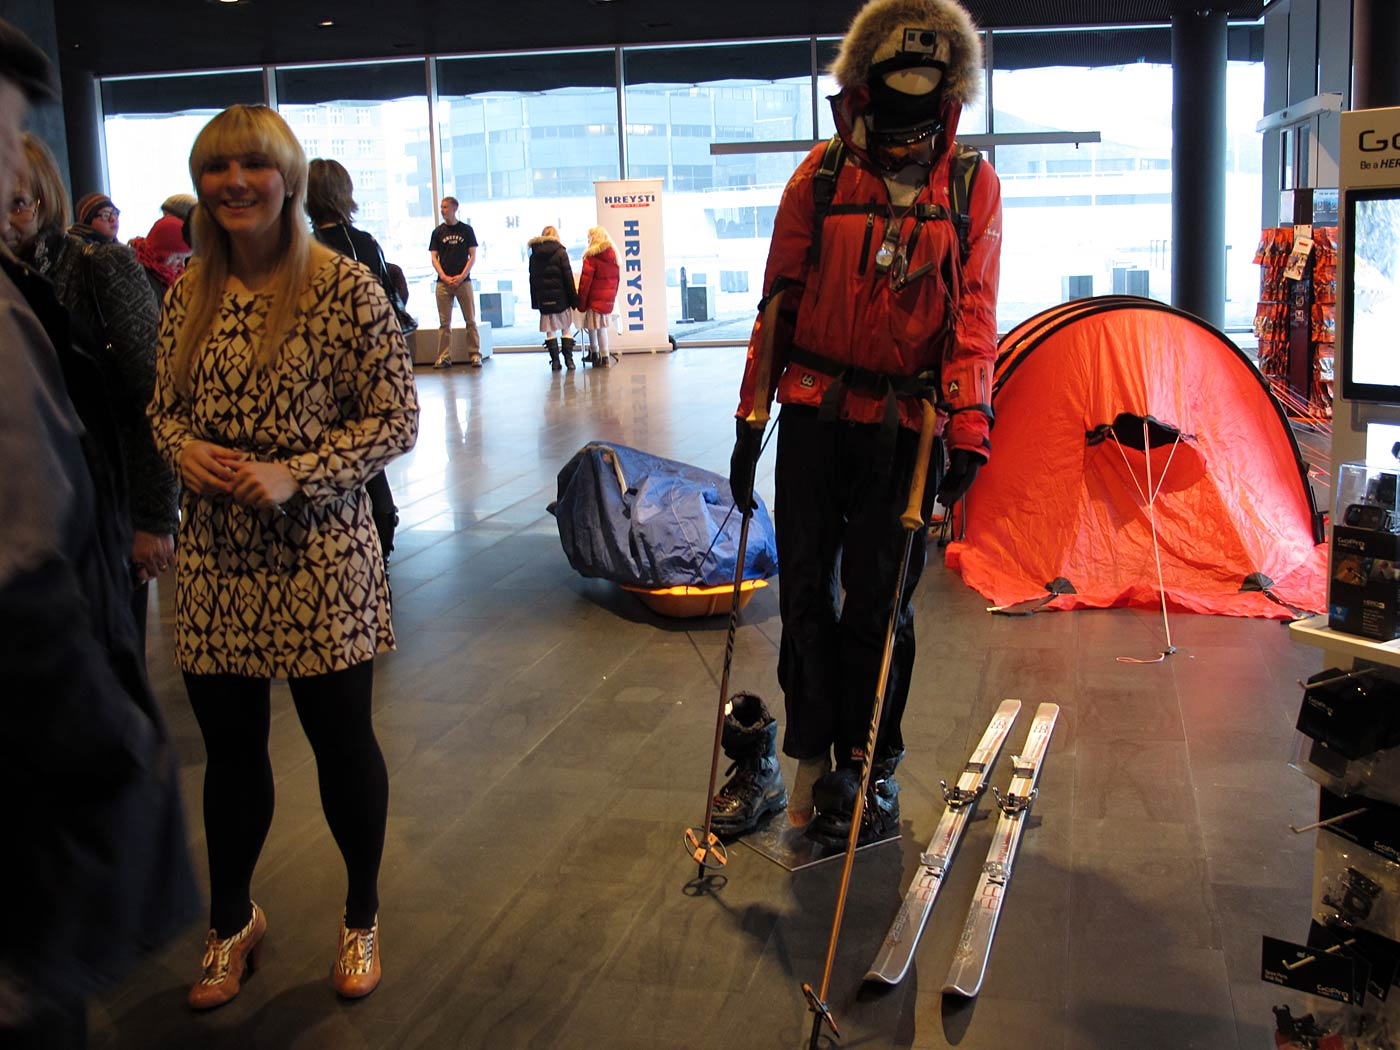 Reykjavík. Vilborg A. Gissurardóttir, from the south pole to HARPA. - Vilborg A. Gissurardóttir (left) was hiking during 60 days from the coast of Antarctica to the south pole. Today she was showing her equipment in HAPRA. More on <a href='http://www.icenews.is/2013/01/21/south-pole-journey-completed-by-icelander-vilborg-arna-gissurardottir/' target='_blank' class='linksnormal'>IceNews</a>. (3 February 2013)